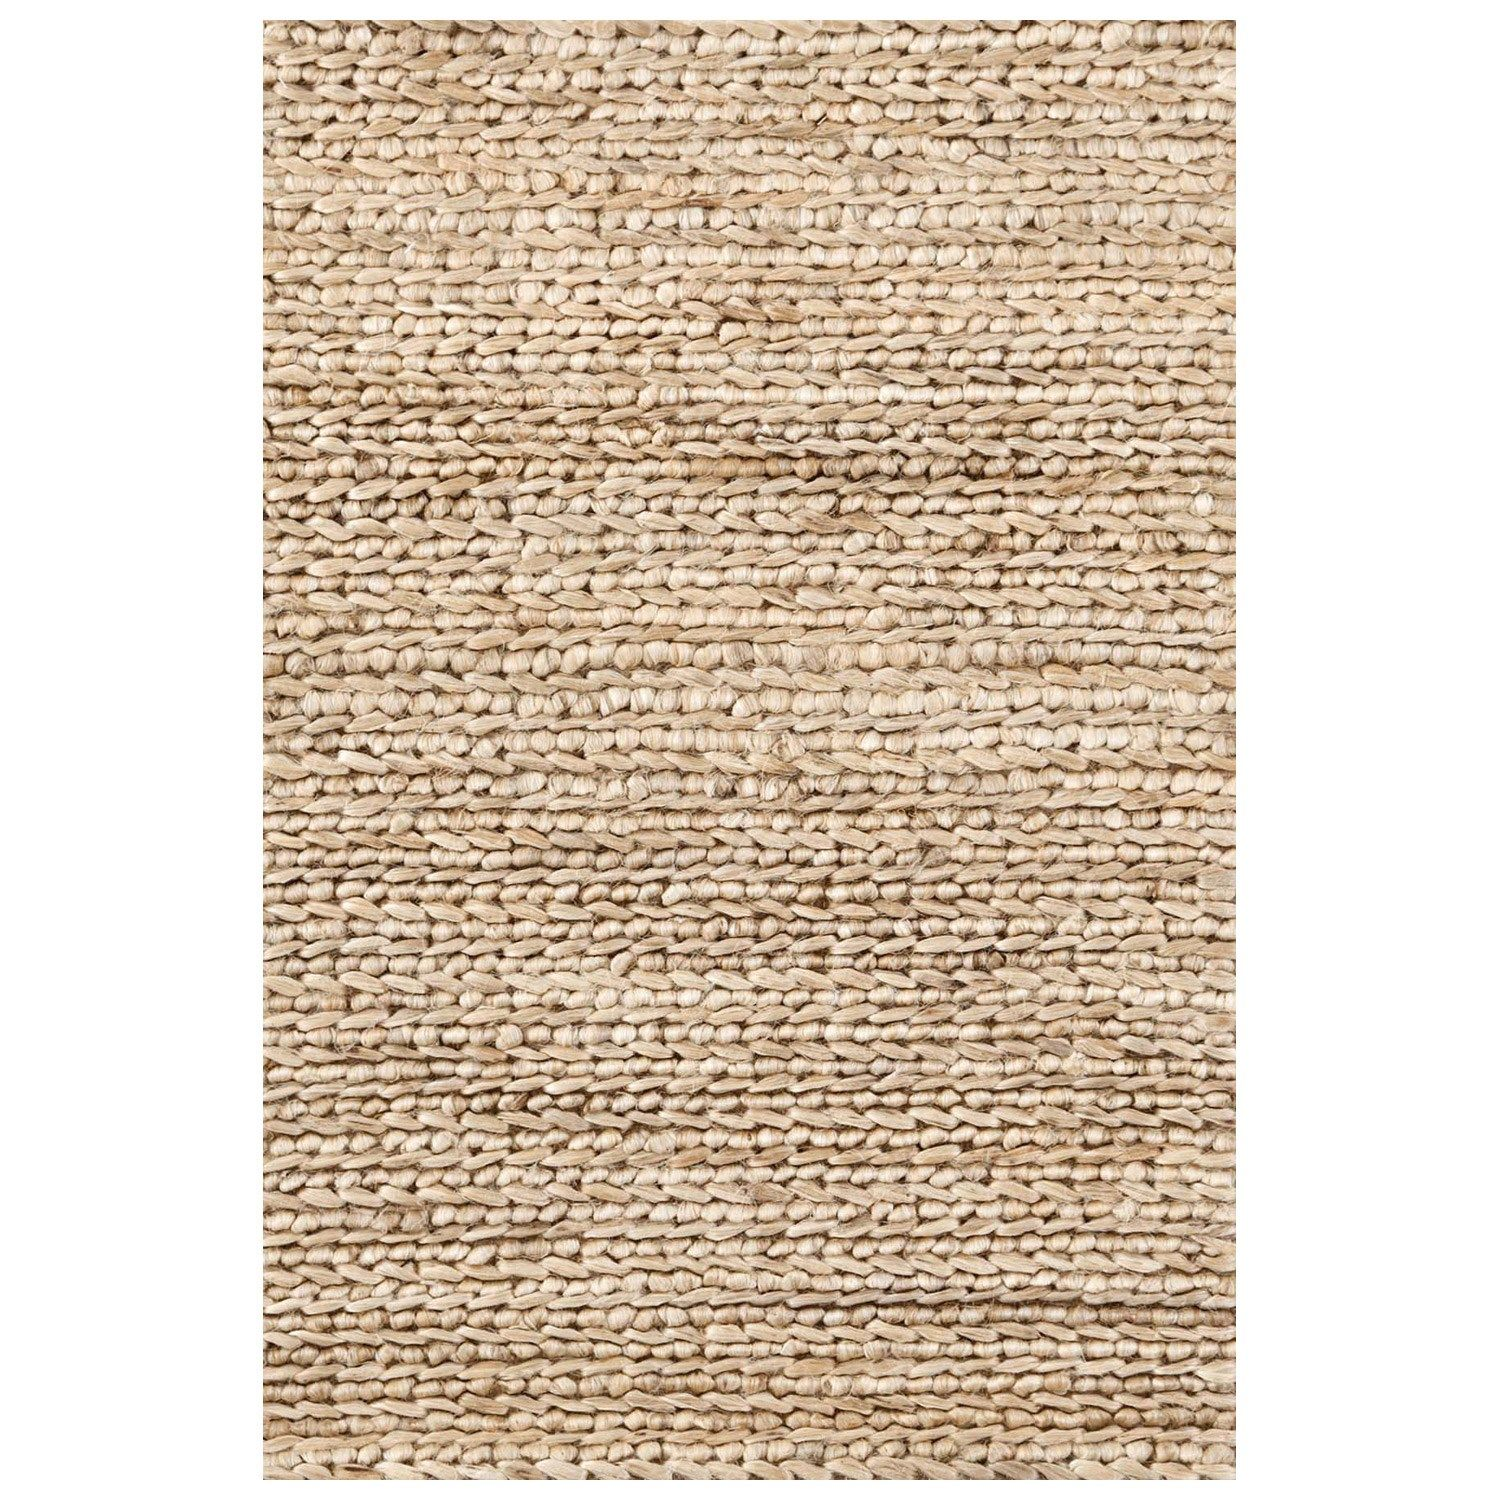 Exterieur Jute Dash And Albert Natural Jute Woven Rug Salon Pinterest